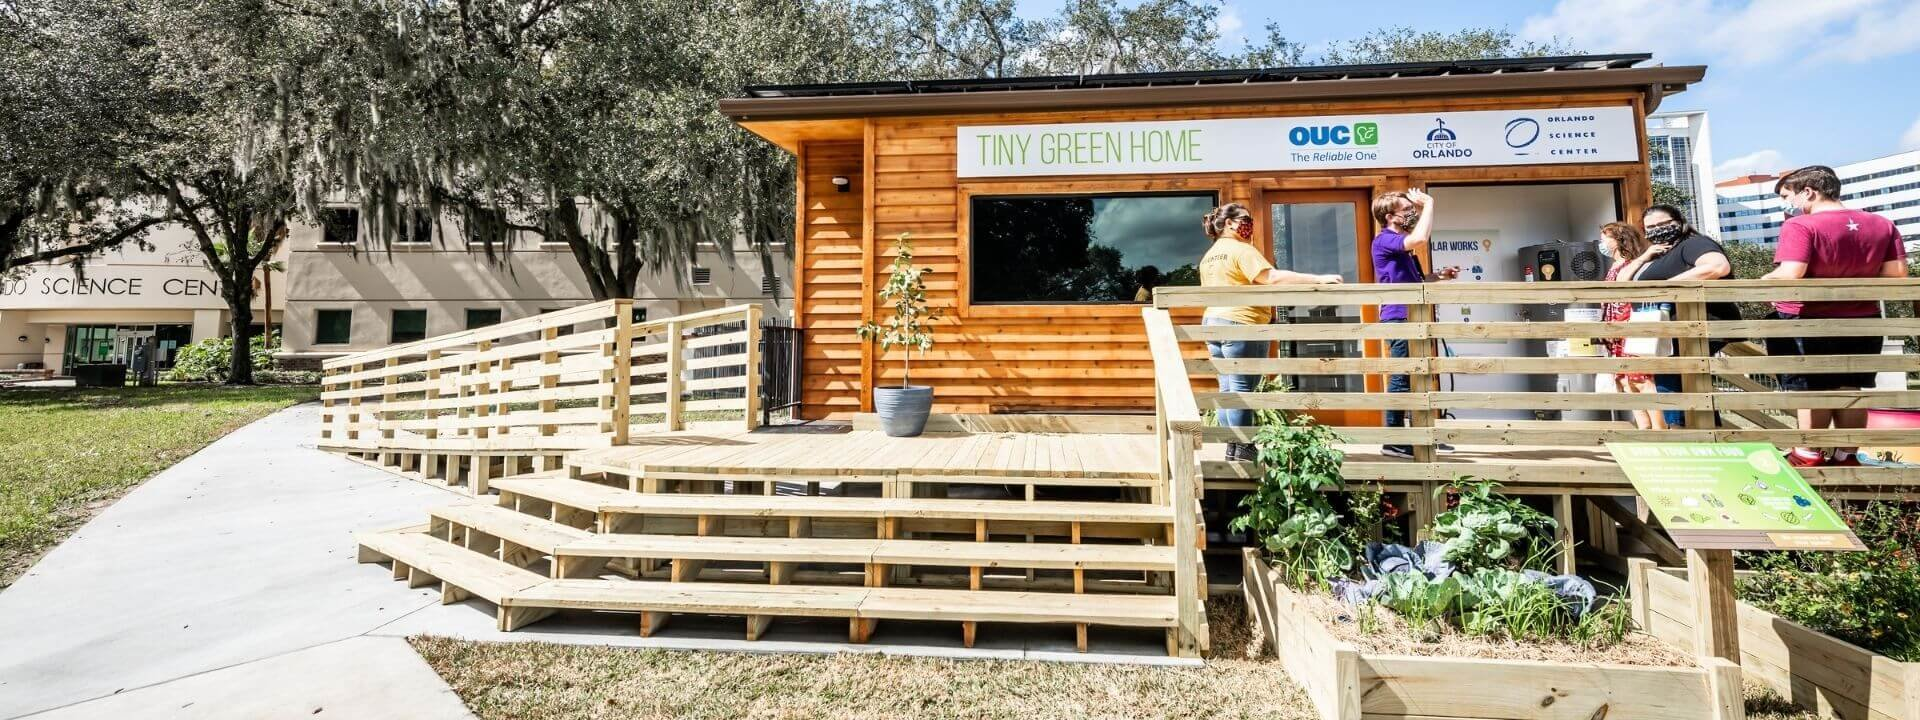 Guests touring a Tiny Green Home at Orlando Science Center